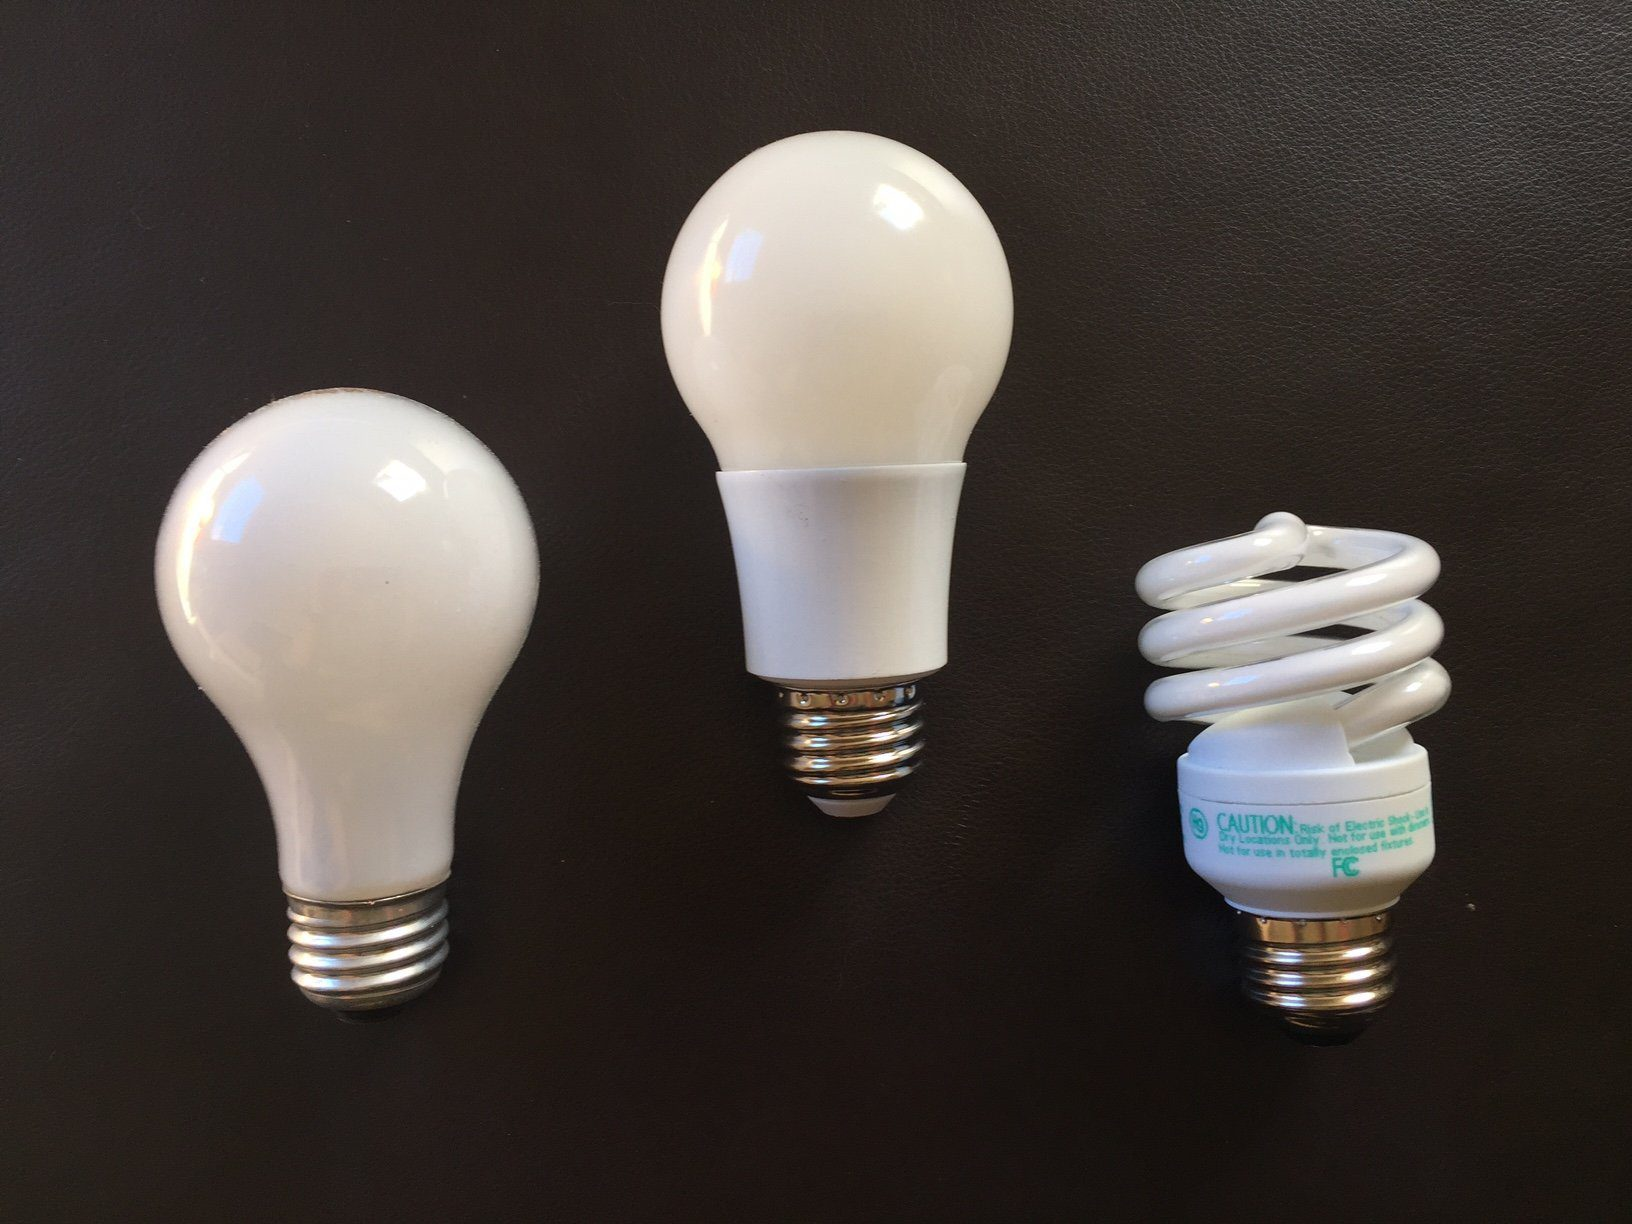 Light Bulb Denver A Primer On The New Law That Will Banish Incandescent Bulbs In